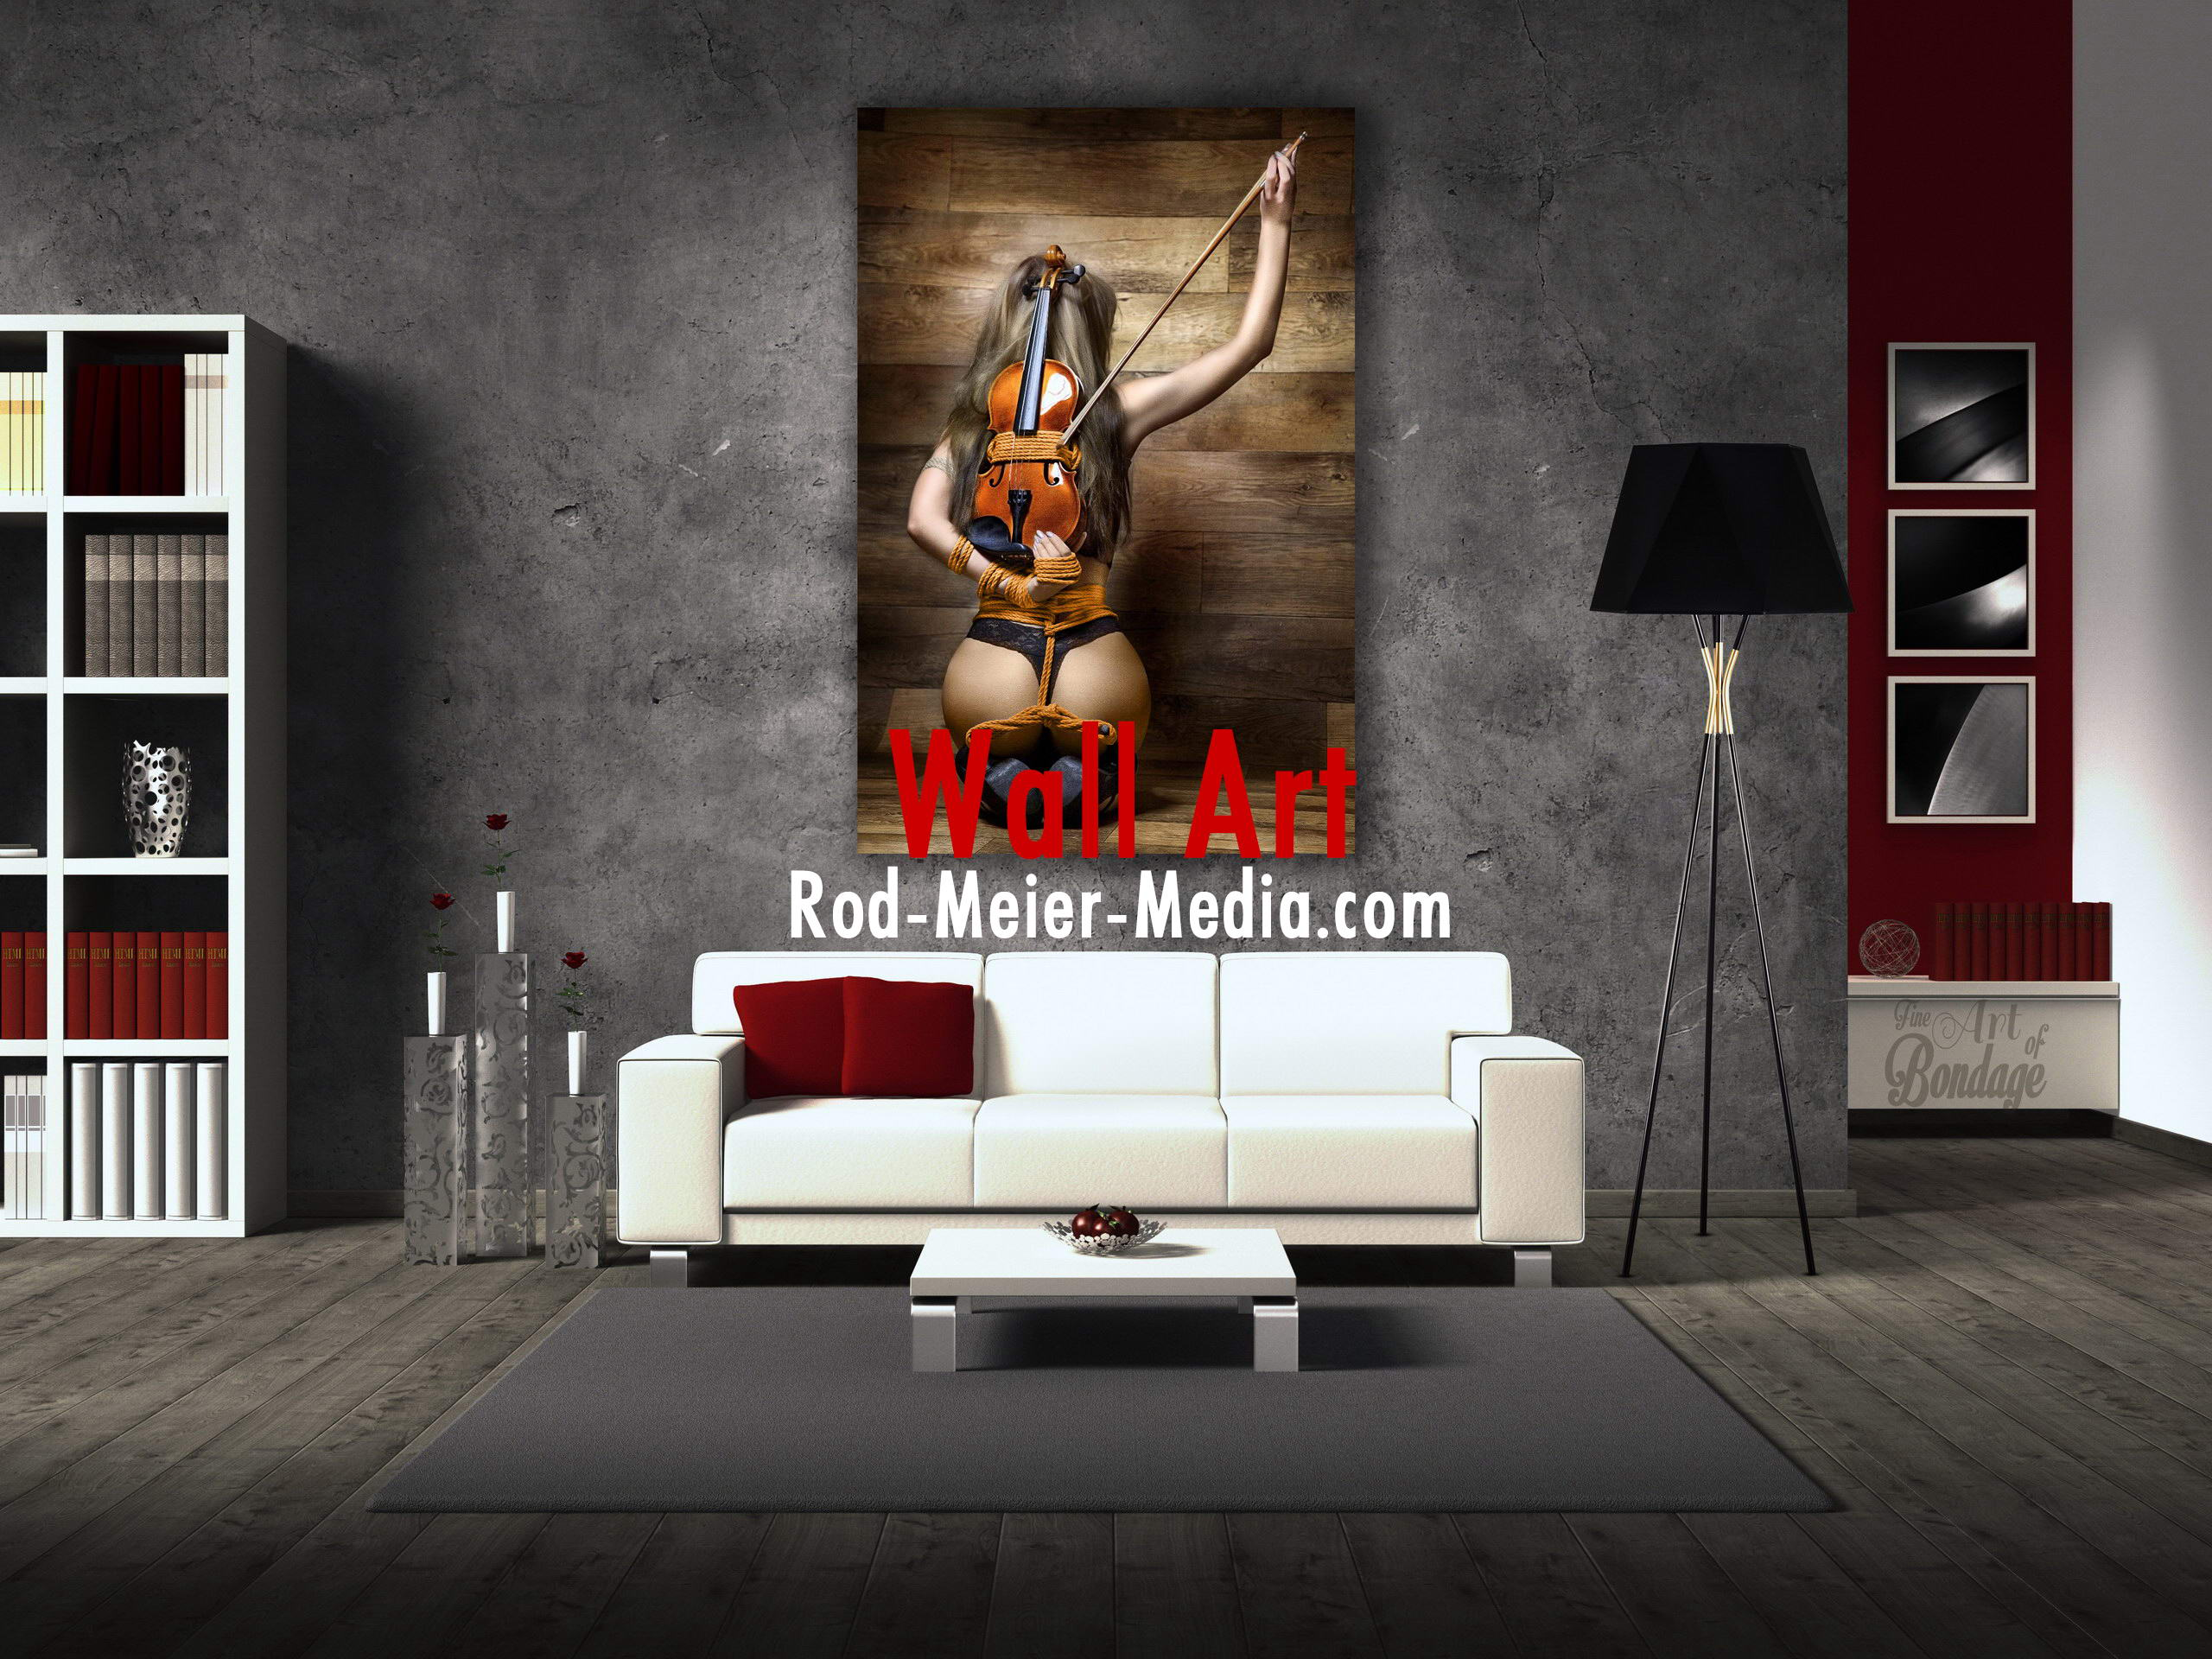 Wall Art - Wandbilder - Shibari Artwork